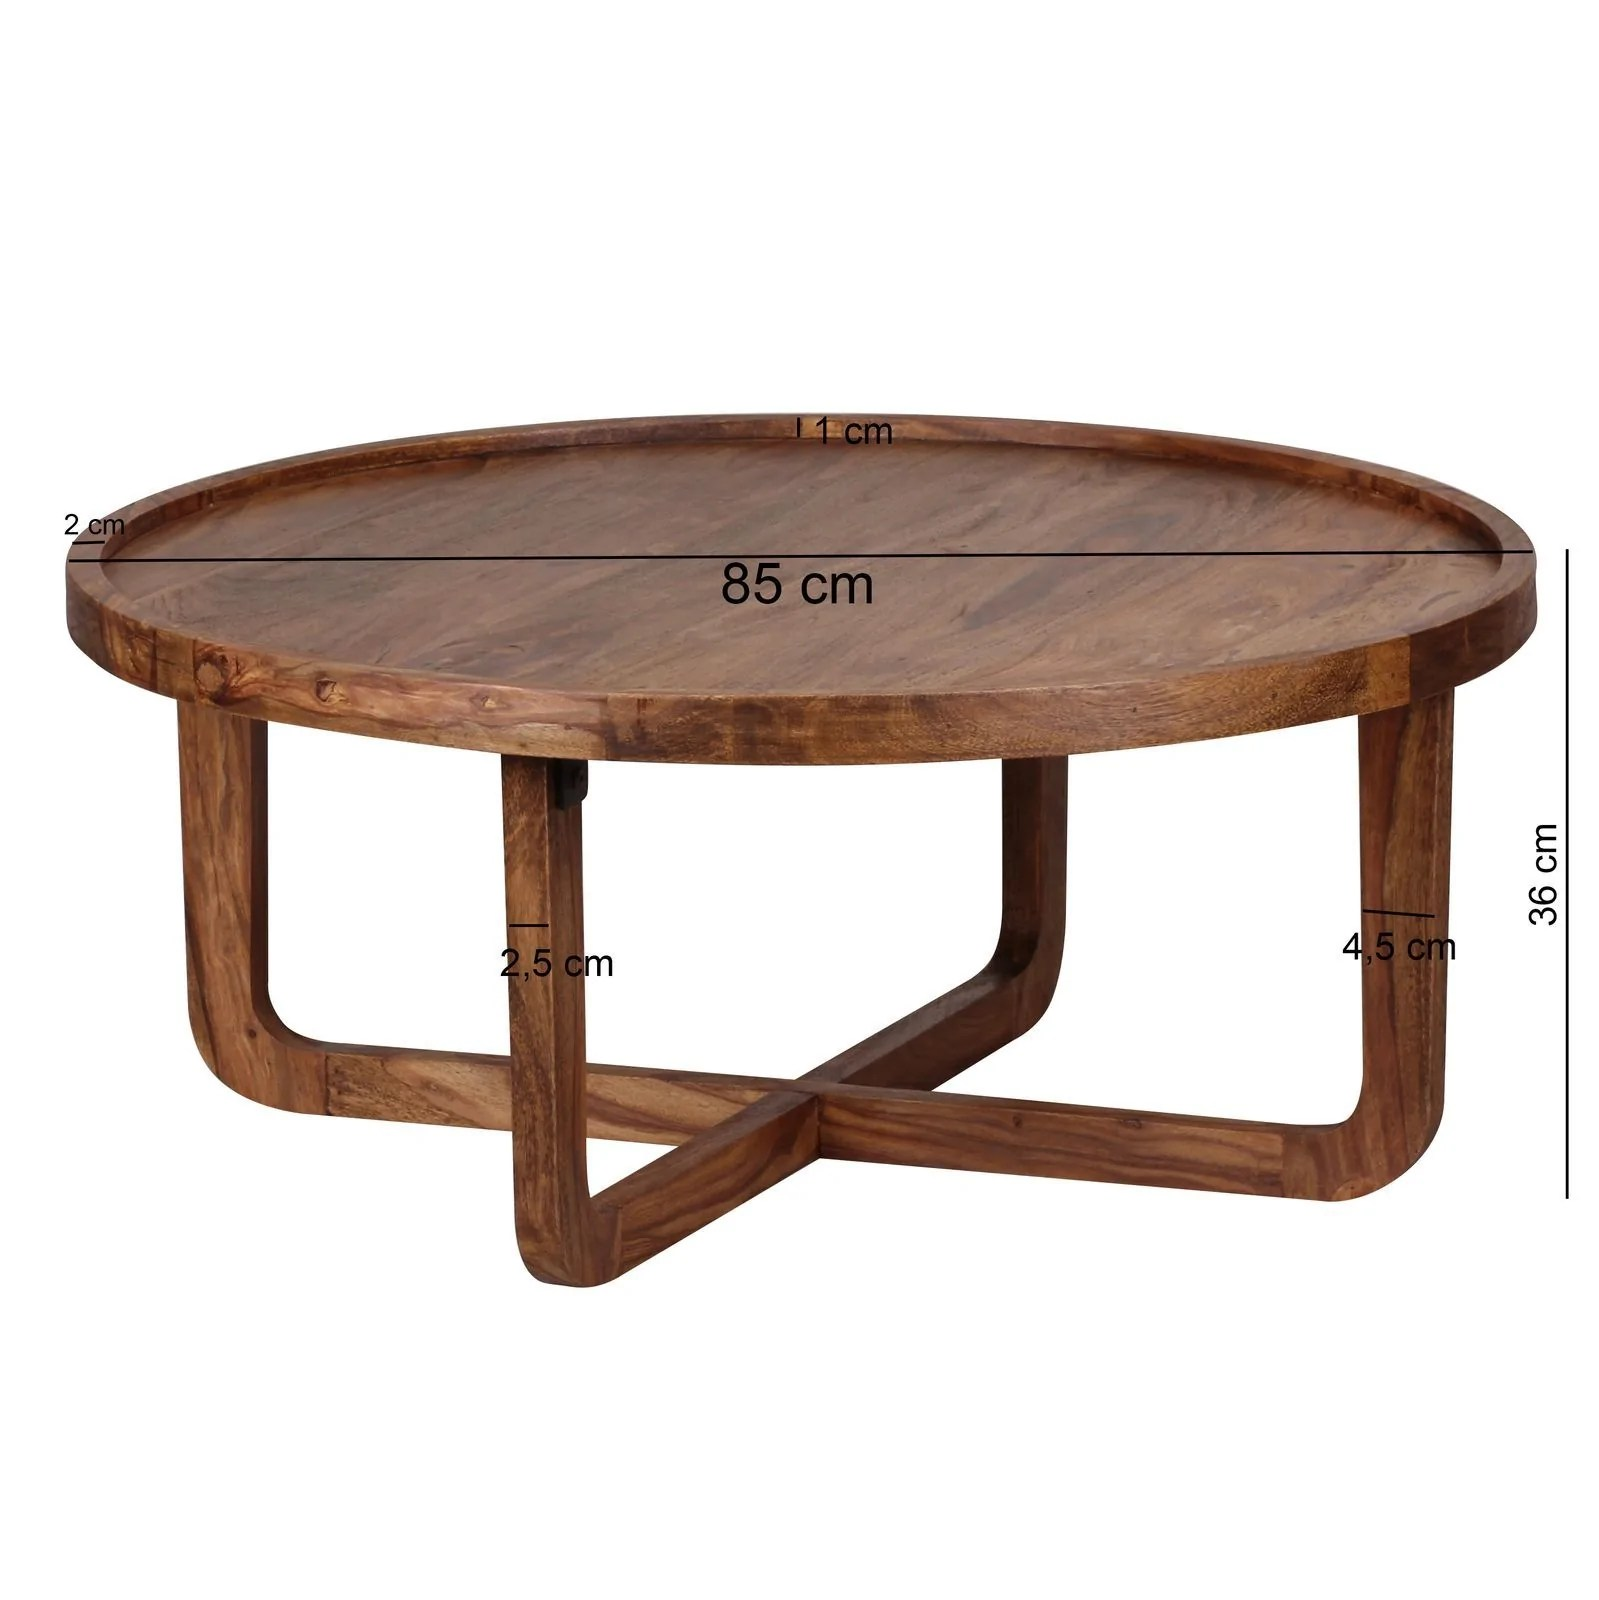 Couchtisch Industrial Oval Solid Wood Curved Round Coffee Table